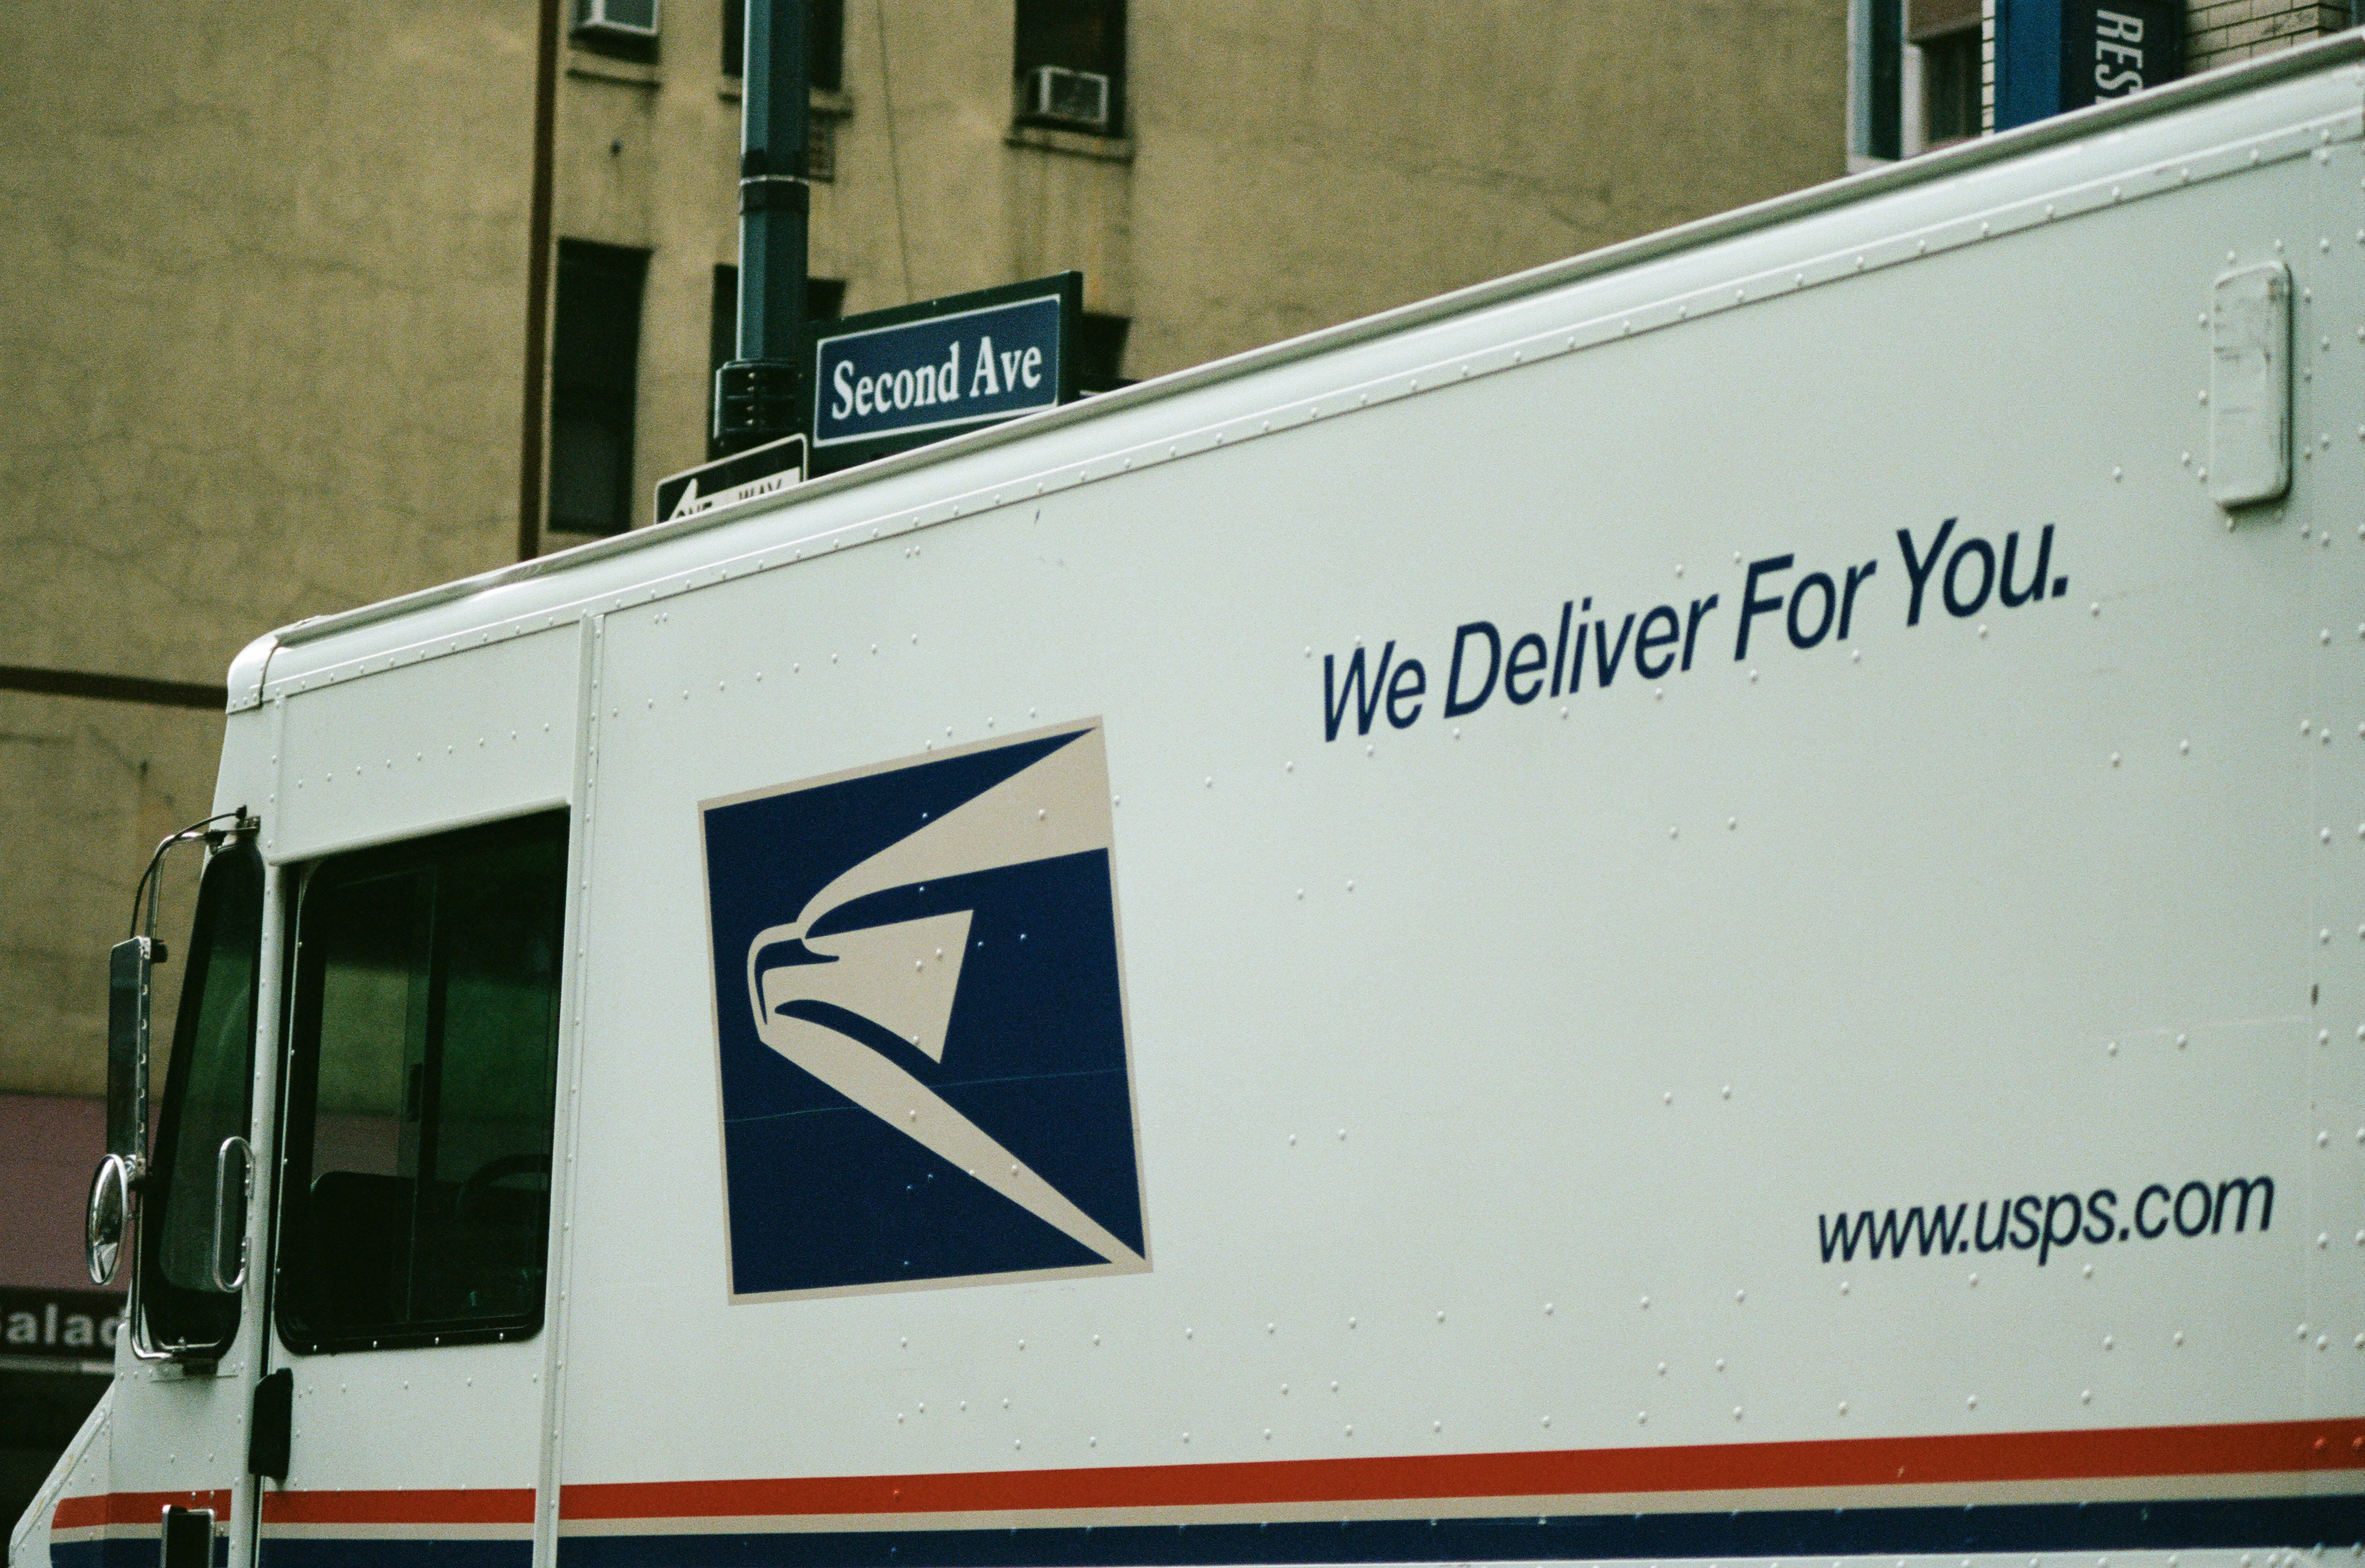 Close-up of logo on a United States Postal Service (USPS) mail truck with tagline reading 'We Deliver For You' driving down 2nd Avenue in Manhattan, New York City, New York, September 15, 2017.